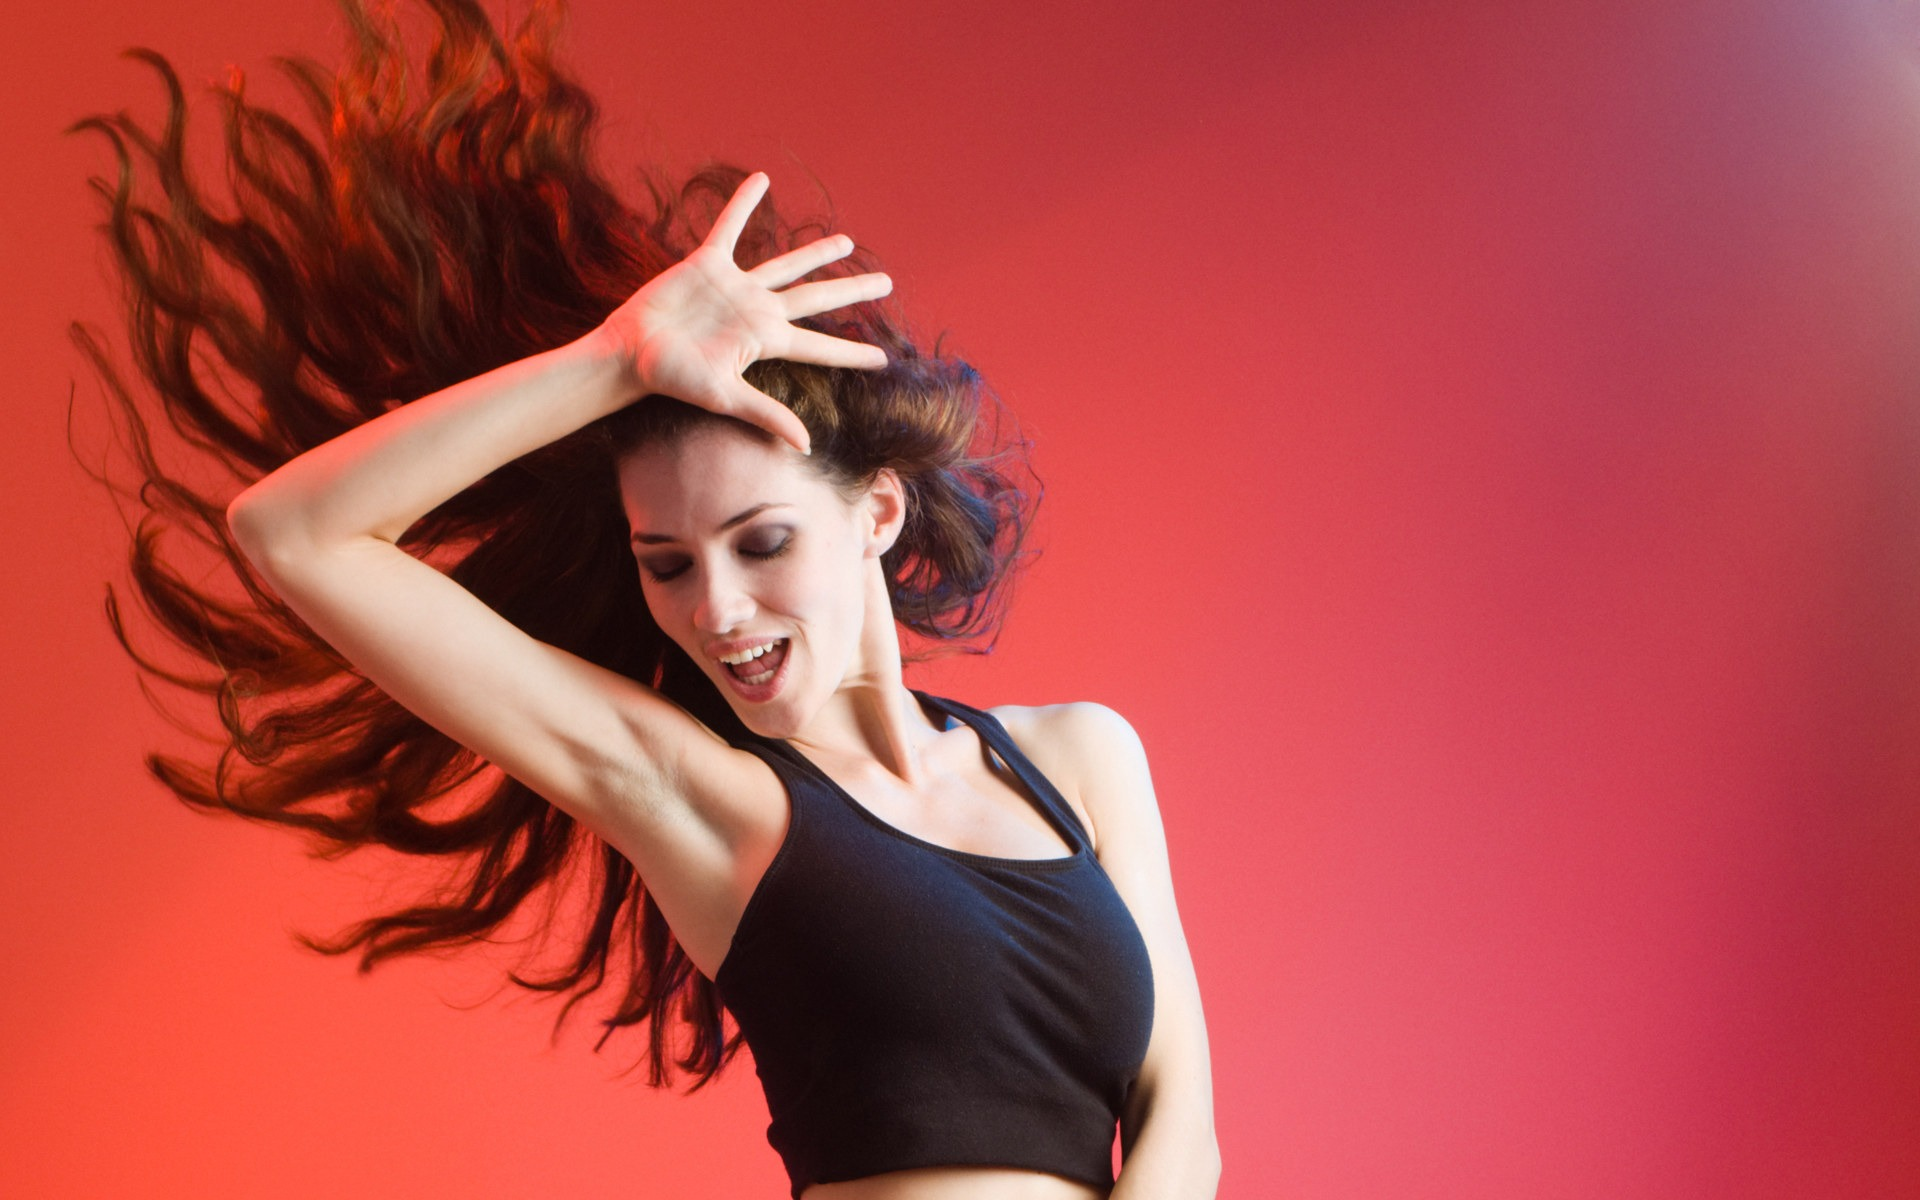 pictures-of-sweating-females-dancing